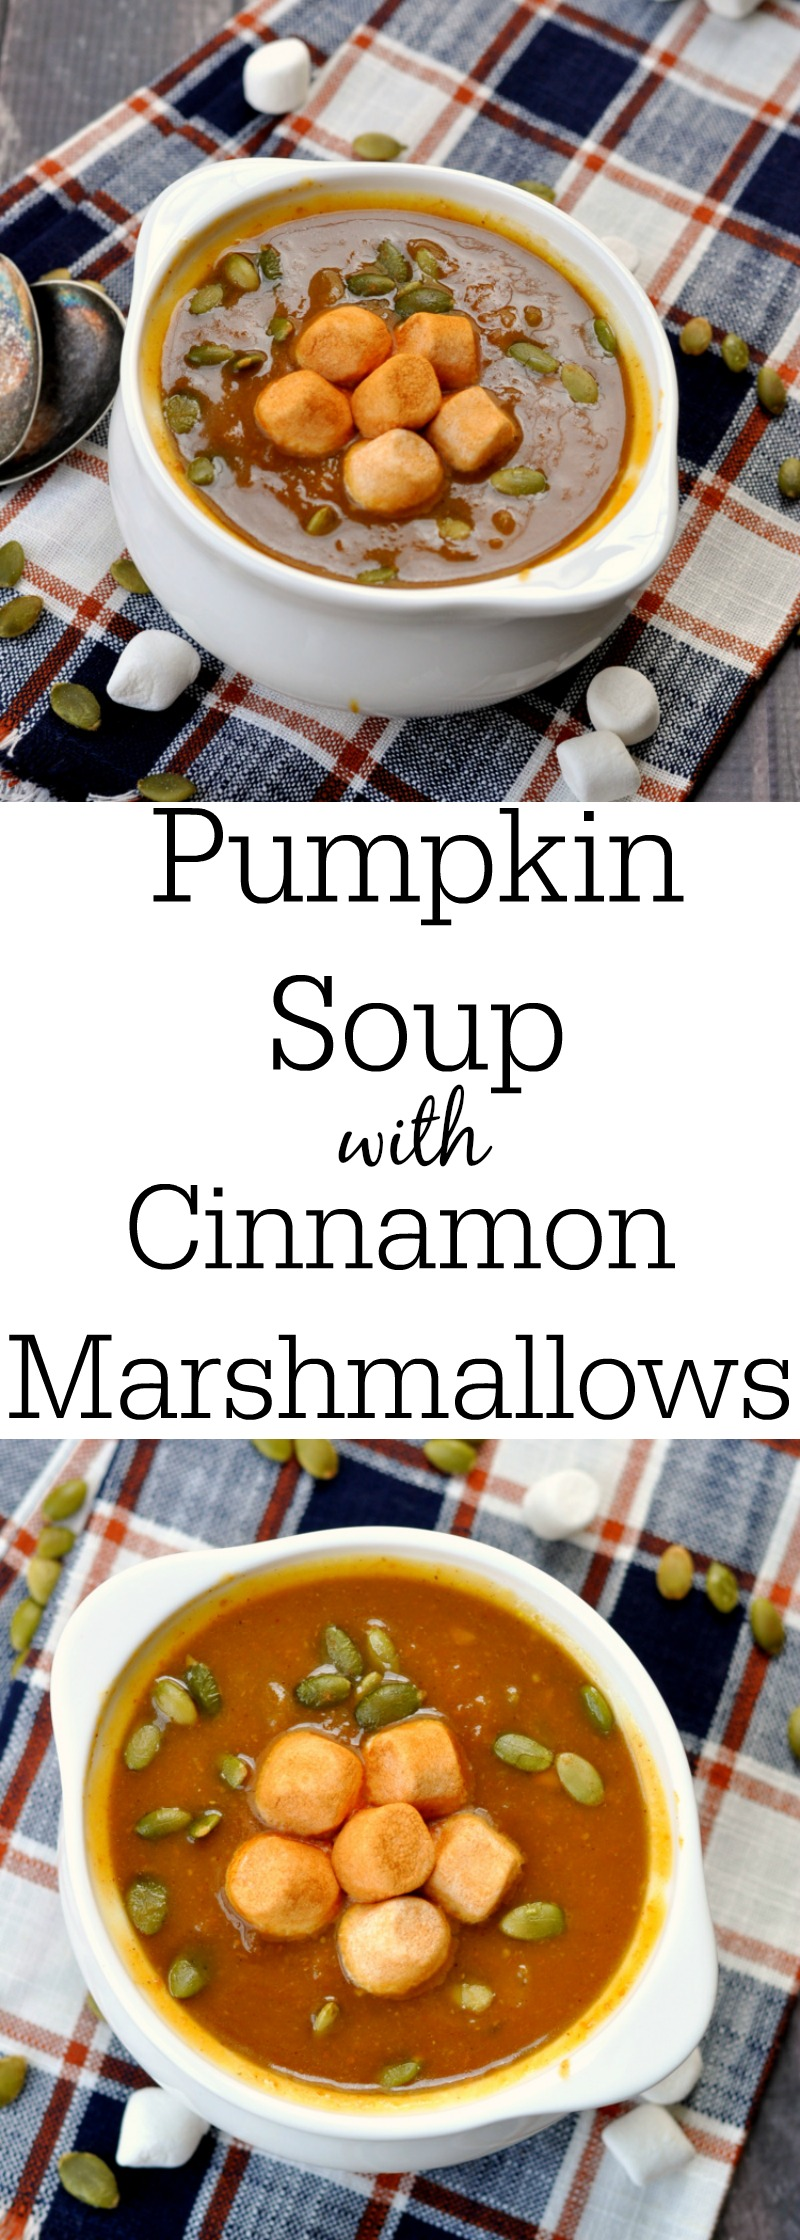 Pumpkin Soup with Cinnamon Marshmallows